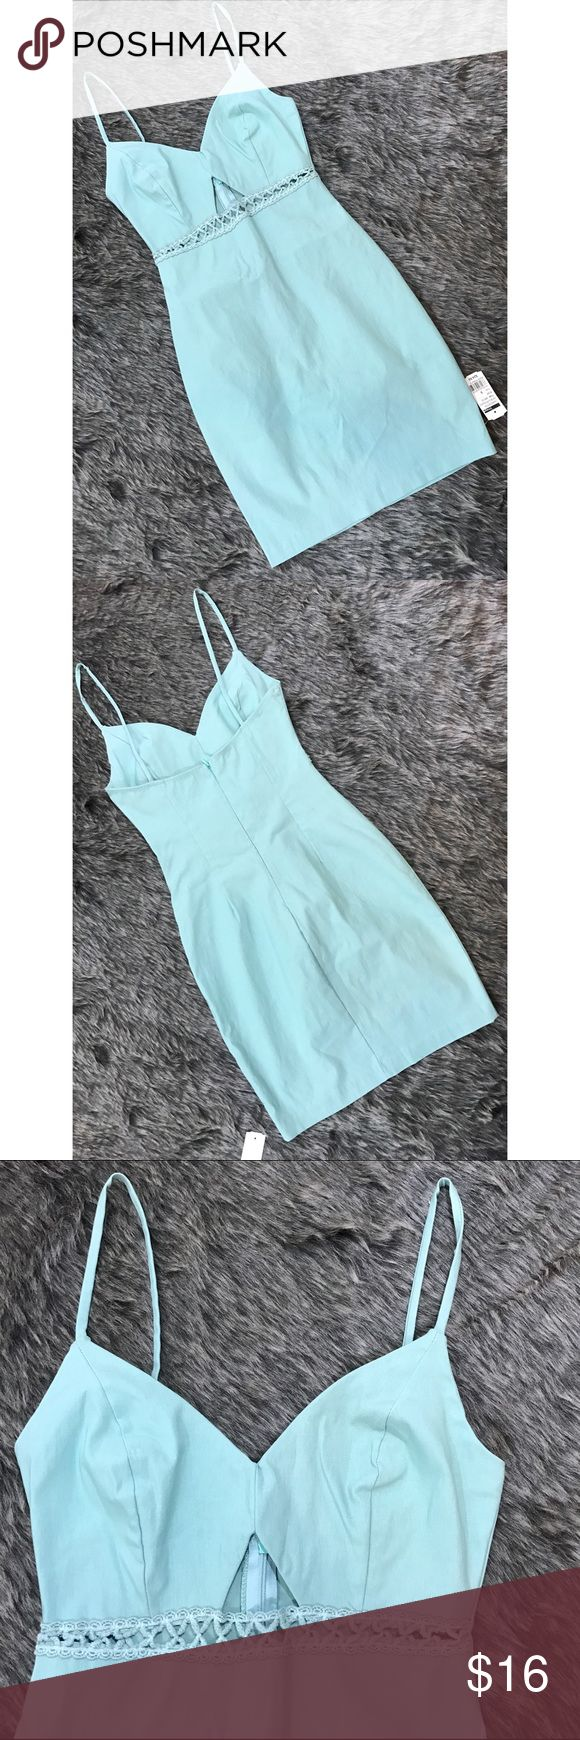 Mint colored bodycon vegas cocktail dress Extra stretchy, curve hugging dress with front cut-out detail. 74% rayon/22% nylon/4% spandex.  pit to bottom hem=24 inches Image Dresses Mini